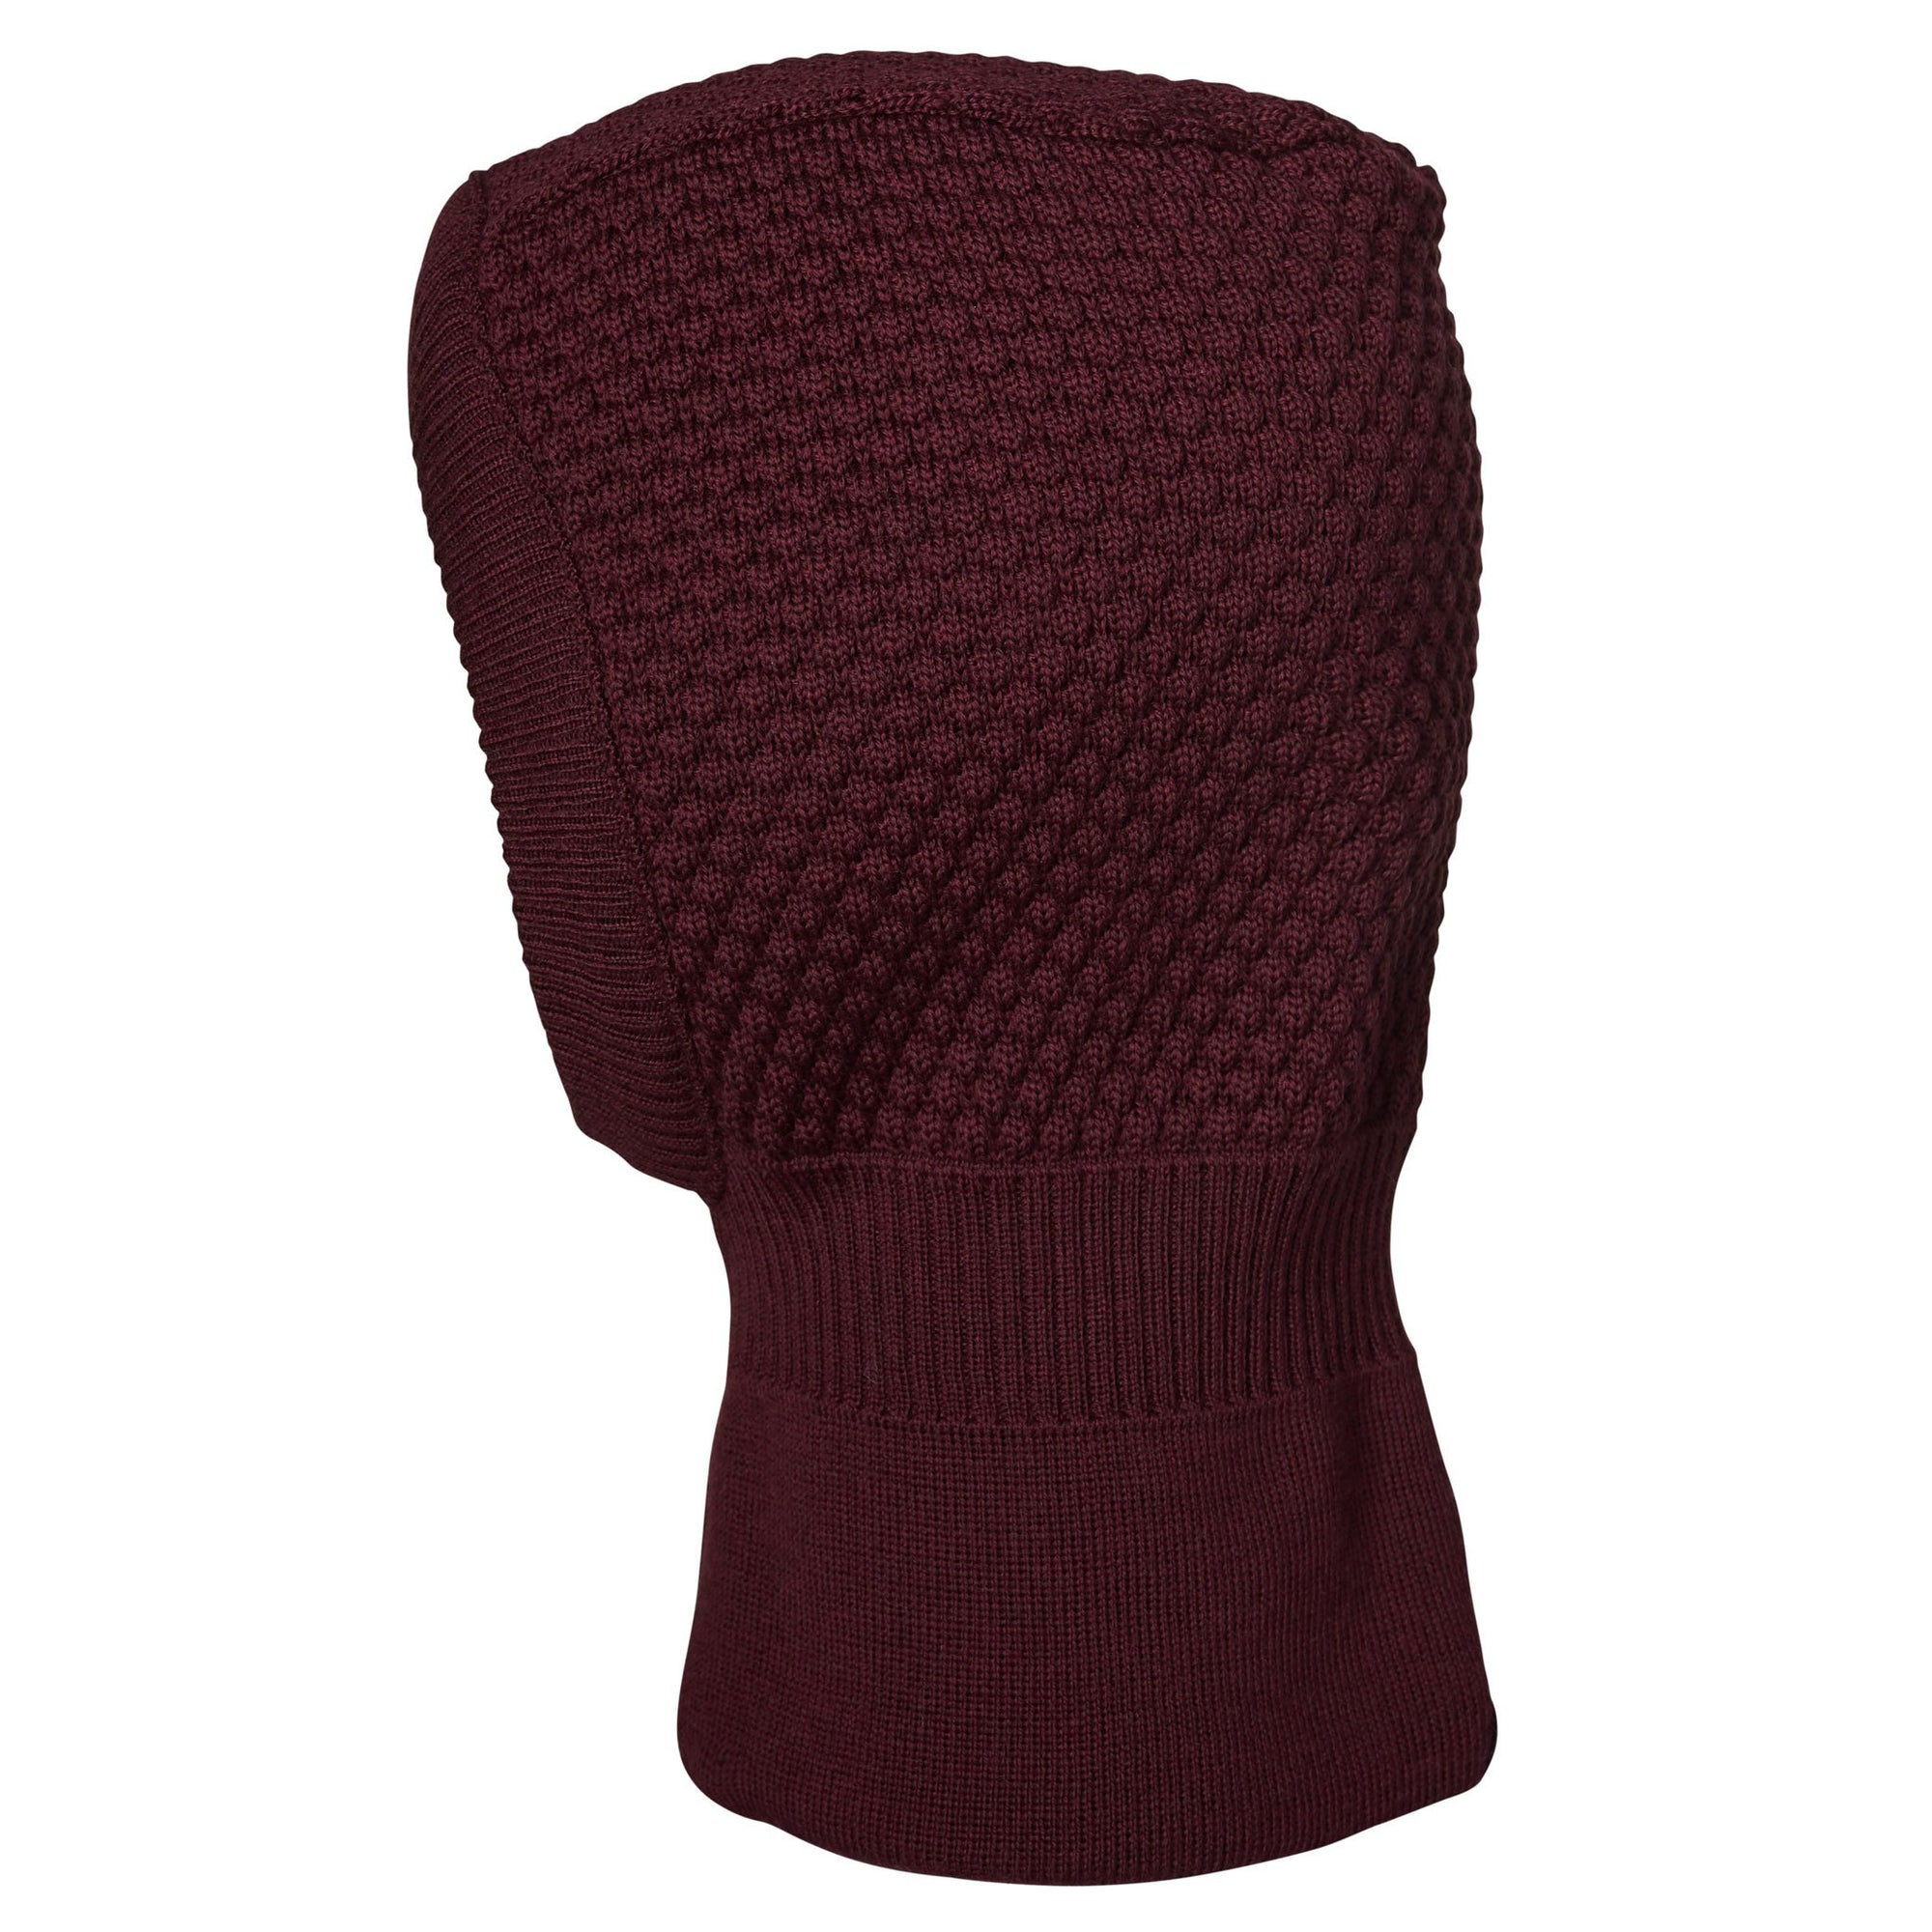 Cagula mp Denmark dublata, windstopper lână merinos - Oslo Wine Red-mp Denmark-HipHip.ro